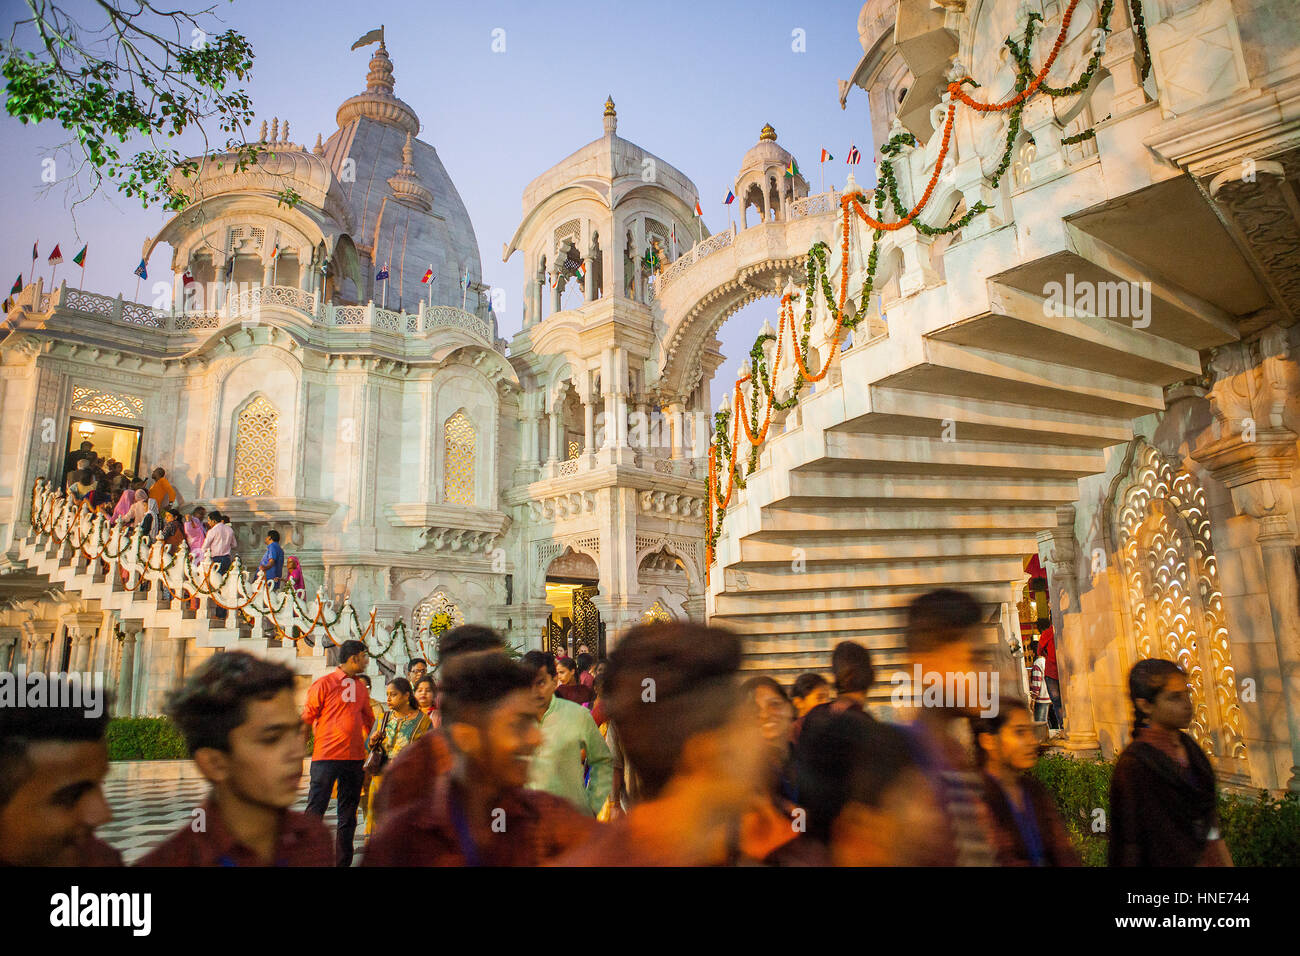 ISKCON temple, Sri Krishna Balaram Mandir,Vrindavan,Mathura, Uttar Pradesh, India Stock Photo